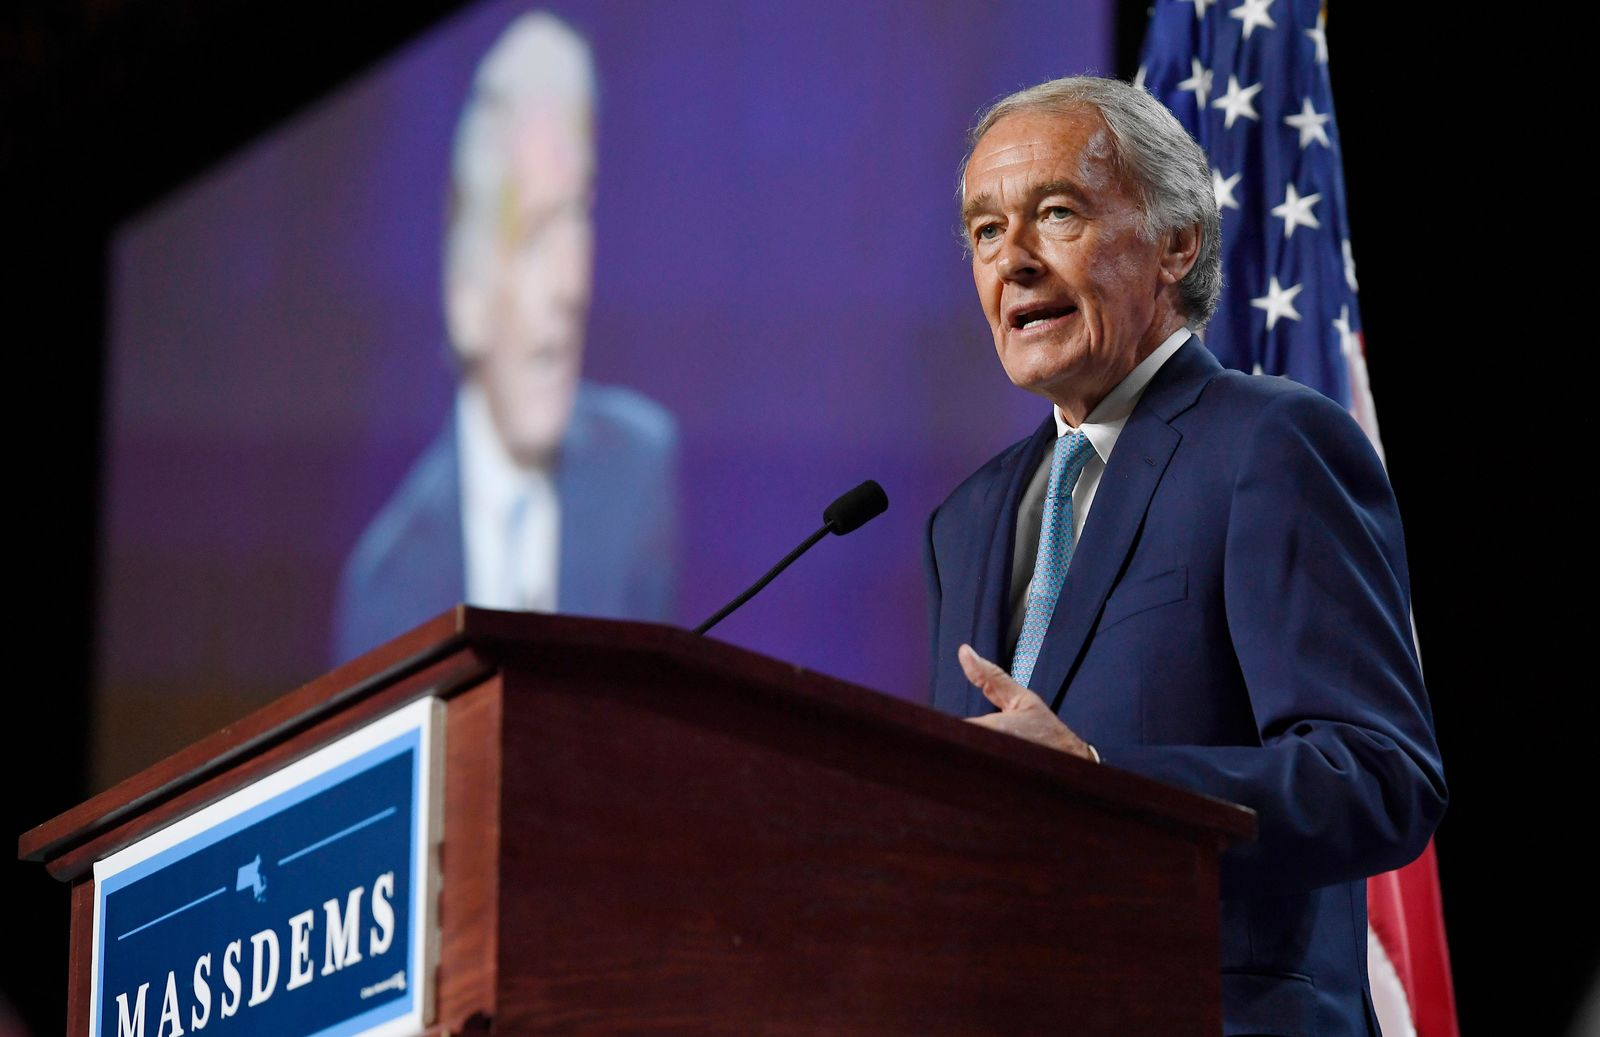 FILE - In this Saturday, Sept. 14, 2019 file photo, U.S. Sen. Edward Markey speaks to delegates during the 2019 Massachusetts Democratic Party Convention, in Springfield, Mass. U.S. Rep. Joseph Kennedy III plans to announce on Saturday, Sept. 21, that he will challenge Markey in the 2020 Democratic primary. (AP Photo/Jessica Hill, File)